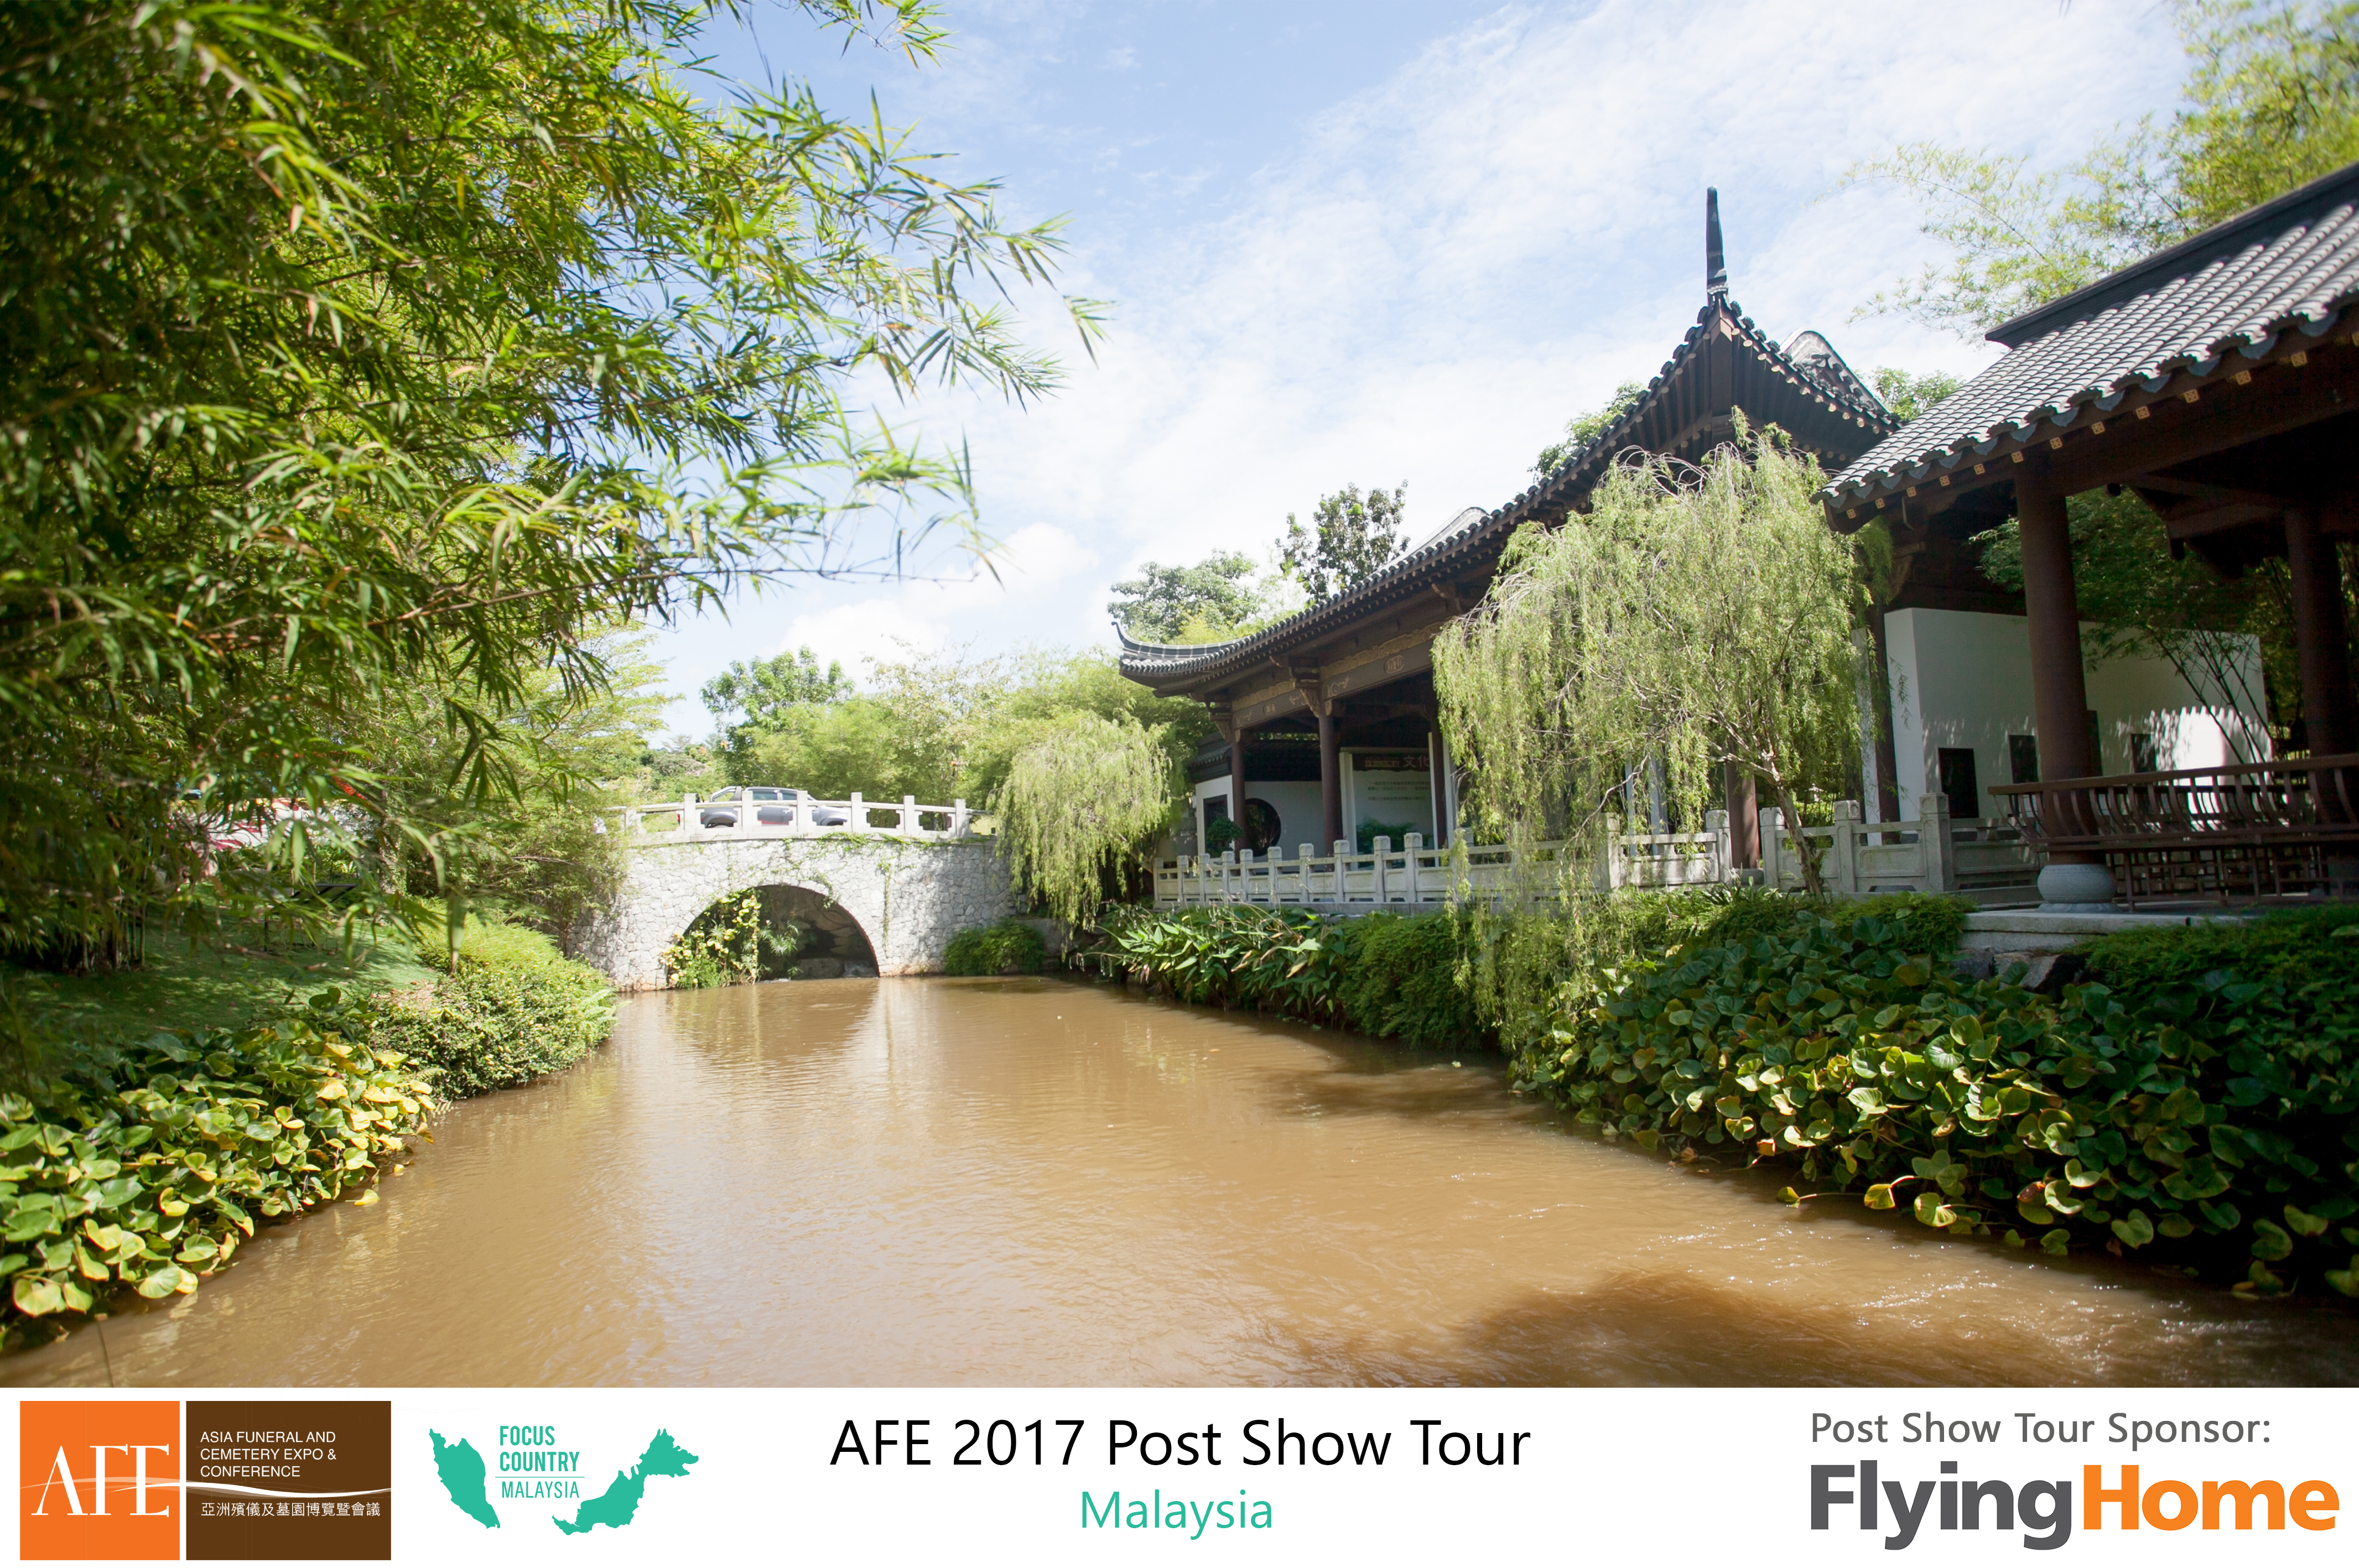 AFE Post Show Tour 2017 Day 2 - 52